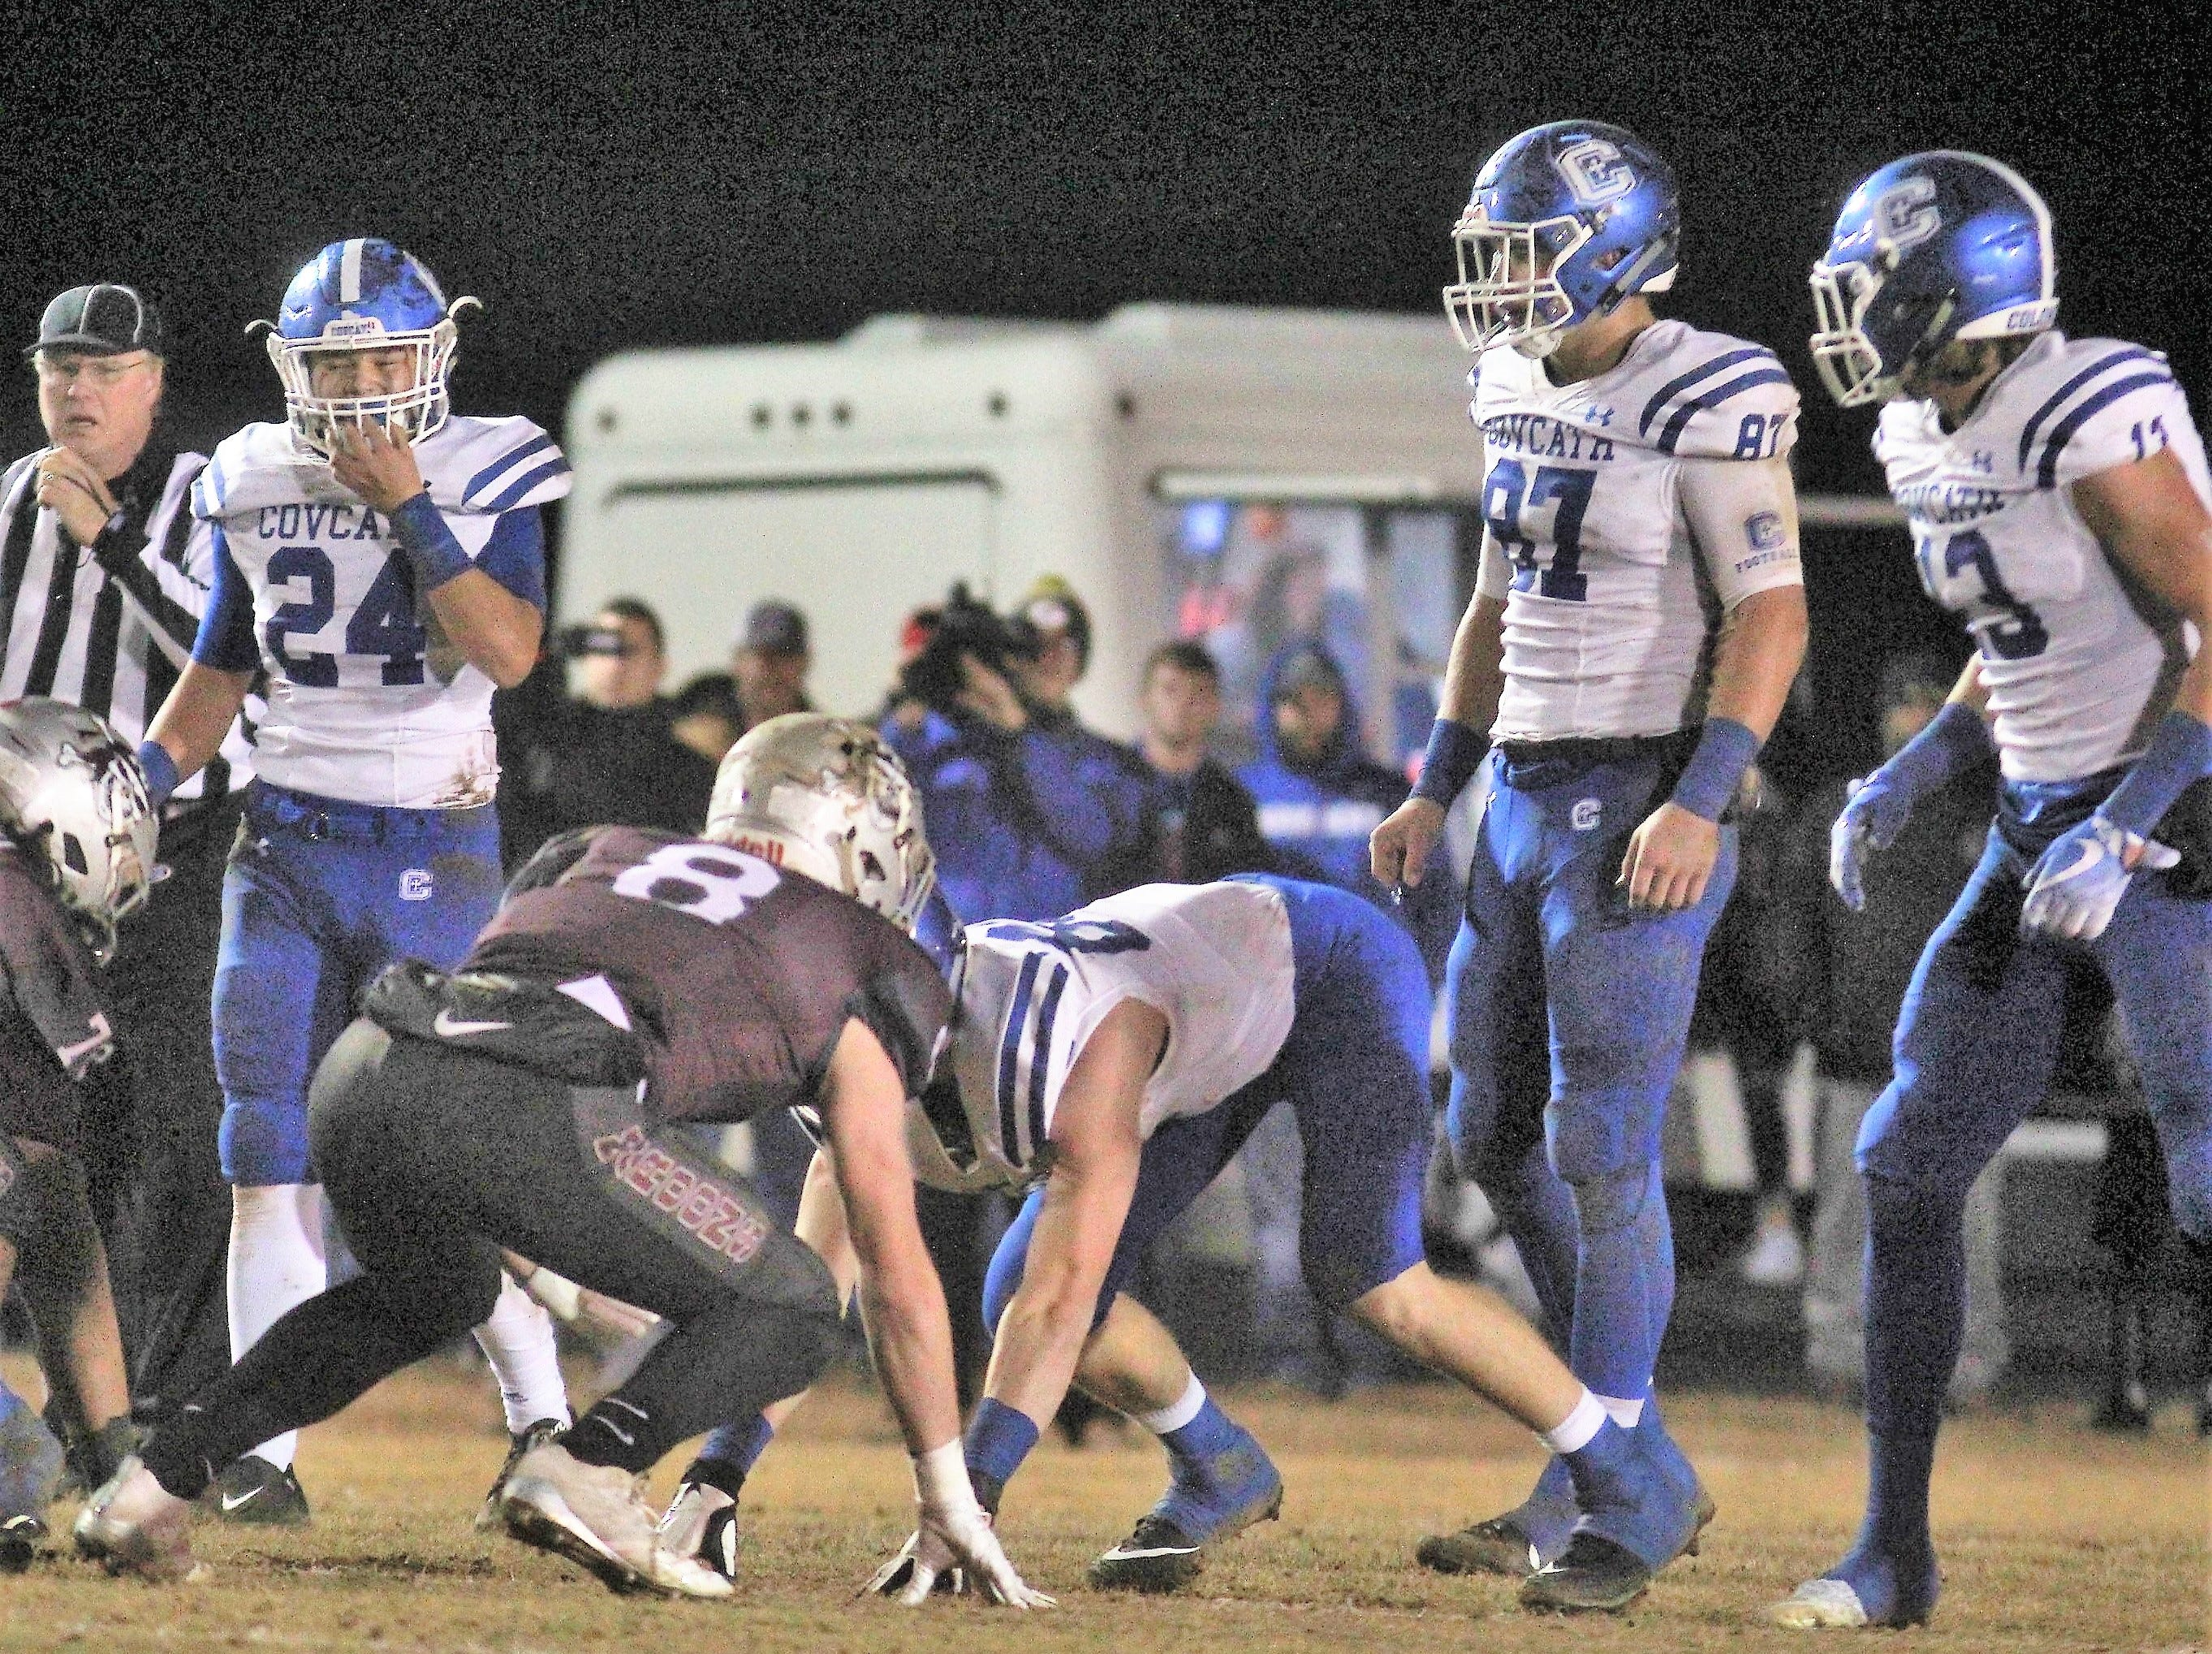 CovCath junior Daniel Felix, 24, junior Michael Mayer, 87, and senior Jack Coldiron, 13, get ready for a play on defense during a KHSAA 5A state football semifinal between Covington Catholic and Pulaski County at Pulaski County HS, Somerset KY, Nov. 23, 2018.